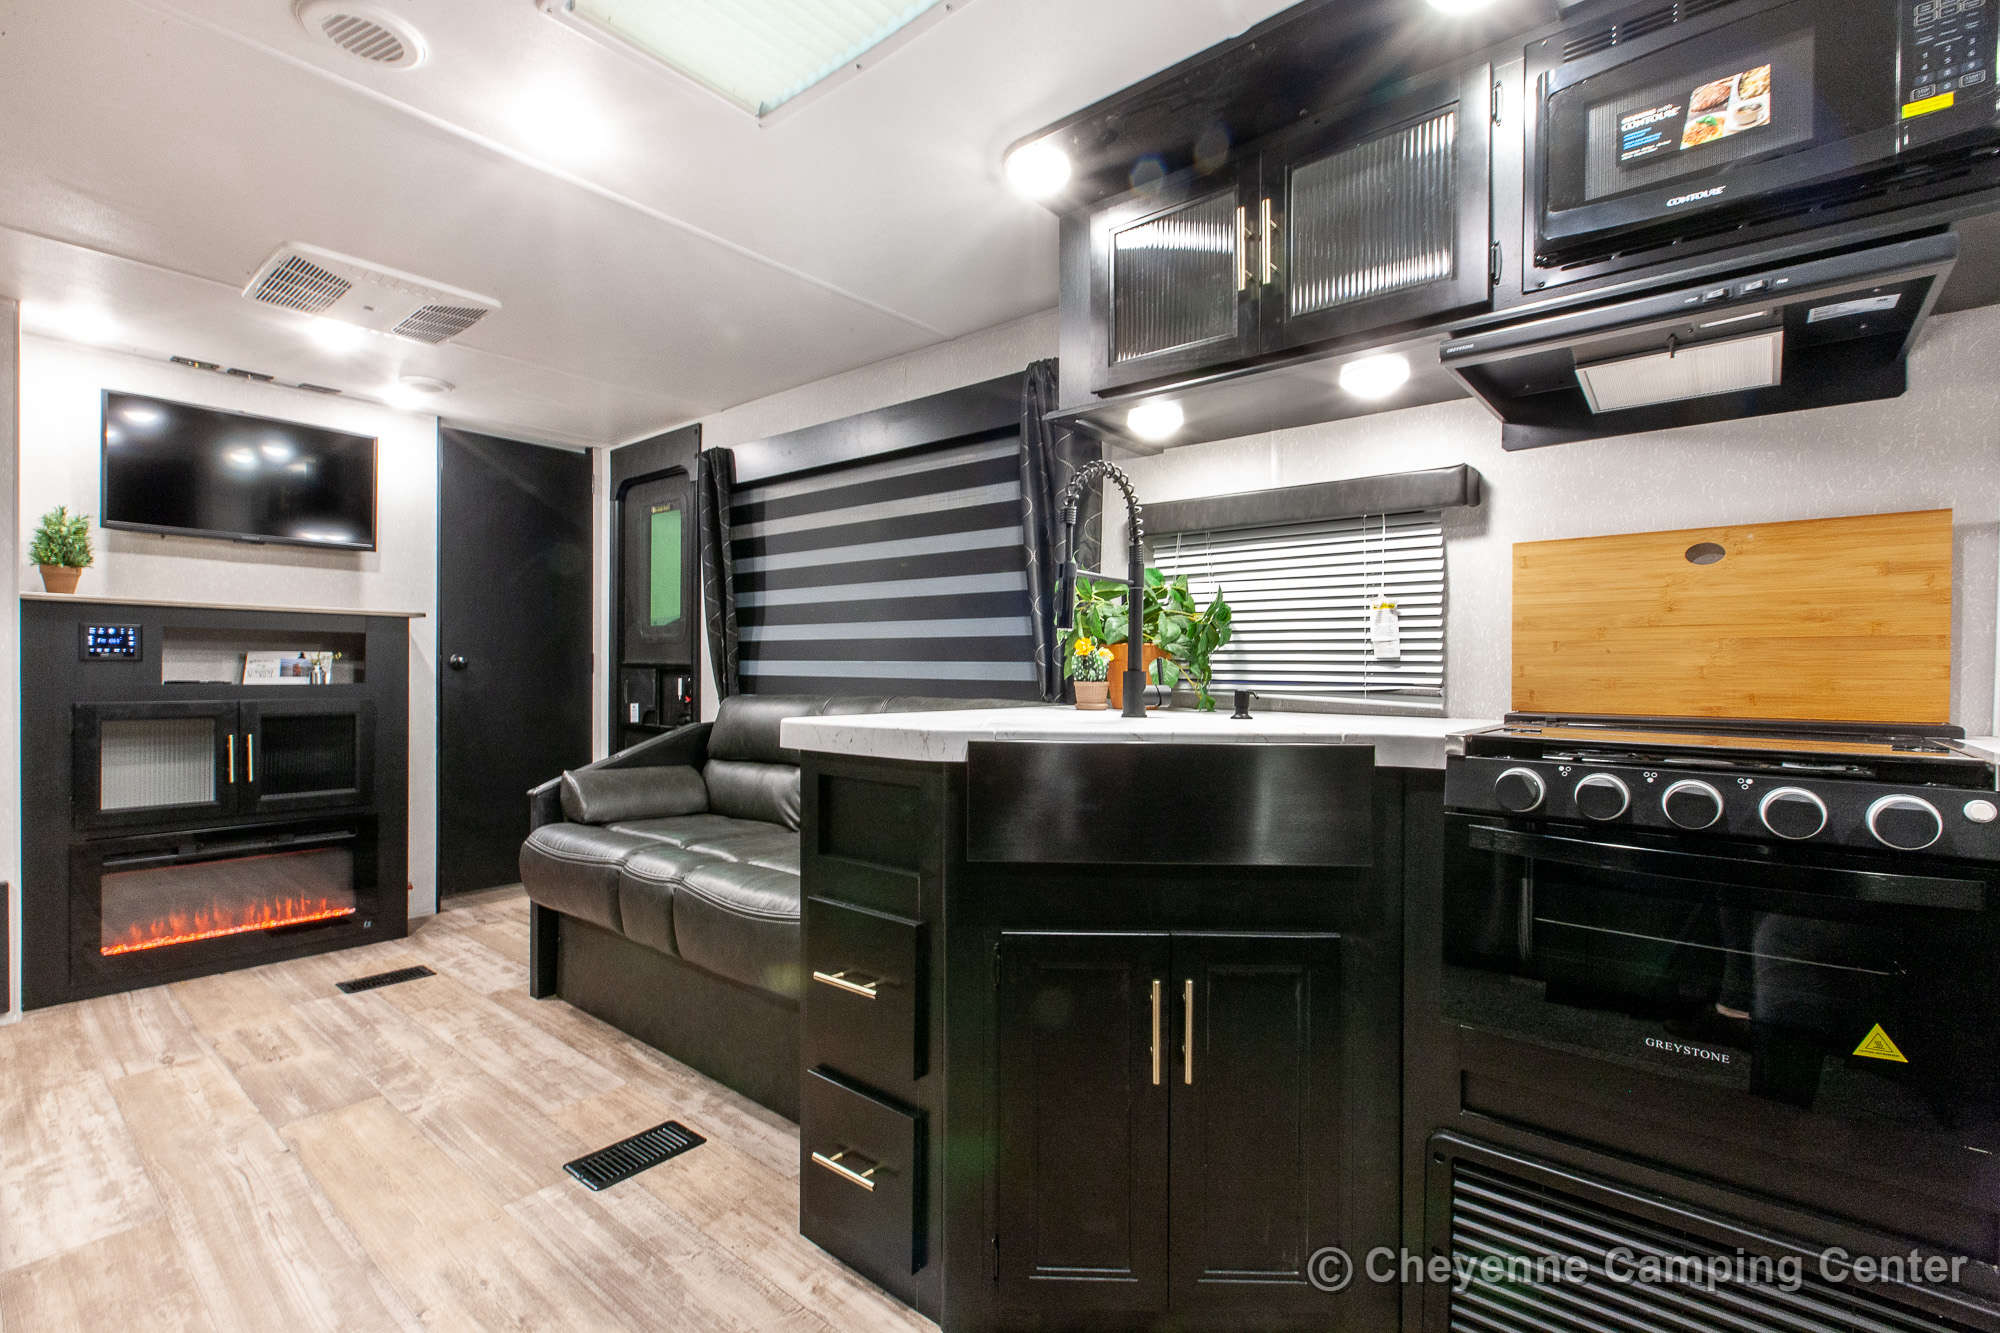 2022 Forest River Cherokee 274BRB Bunkhouse Travel Trailer Interior Image